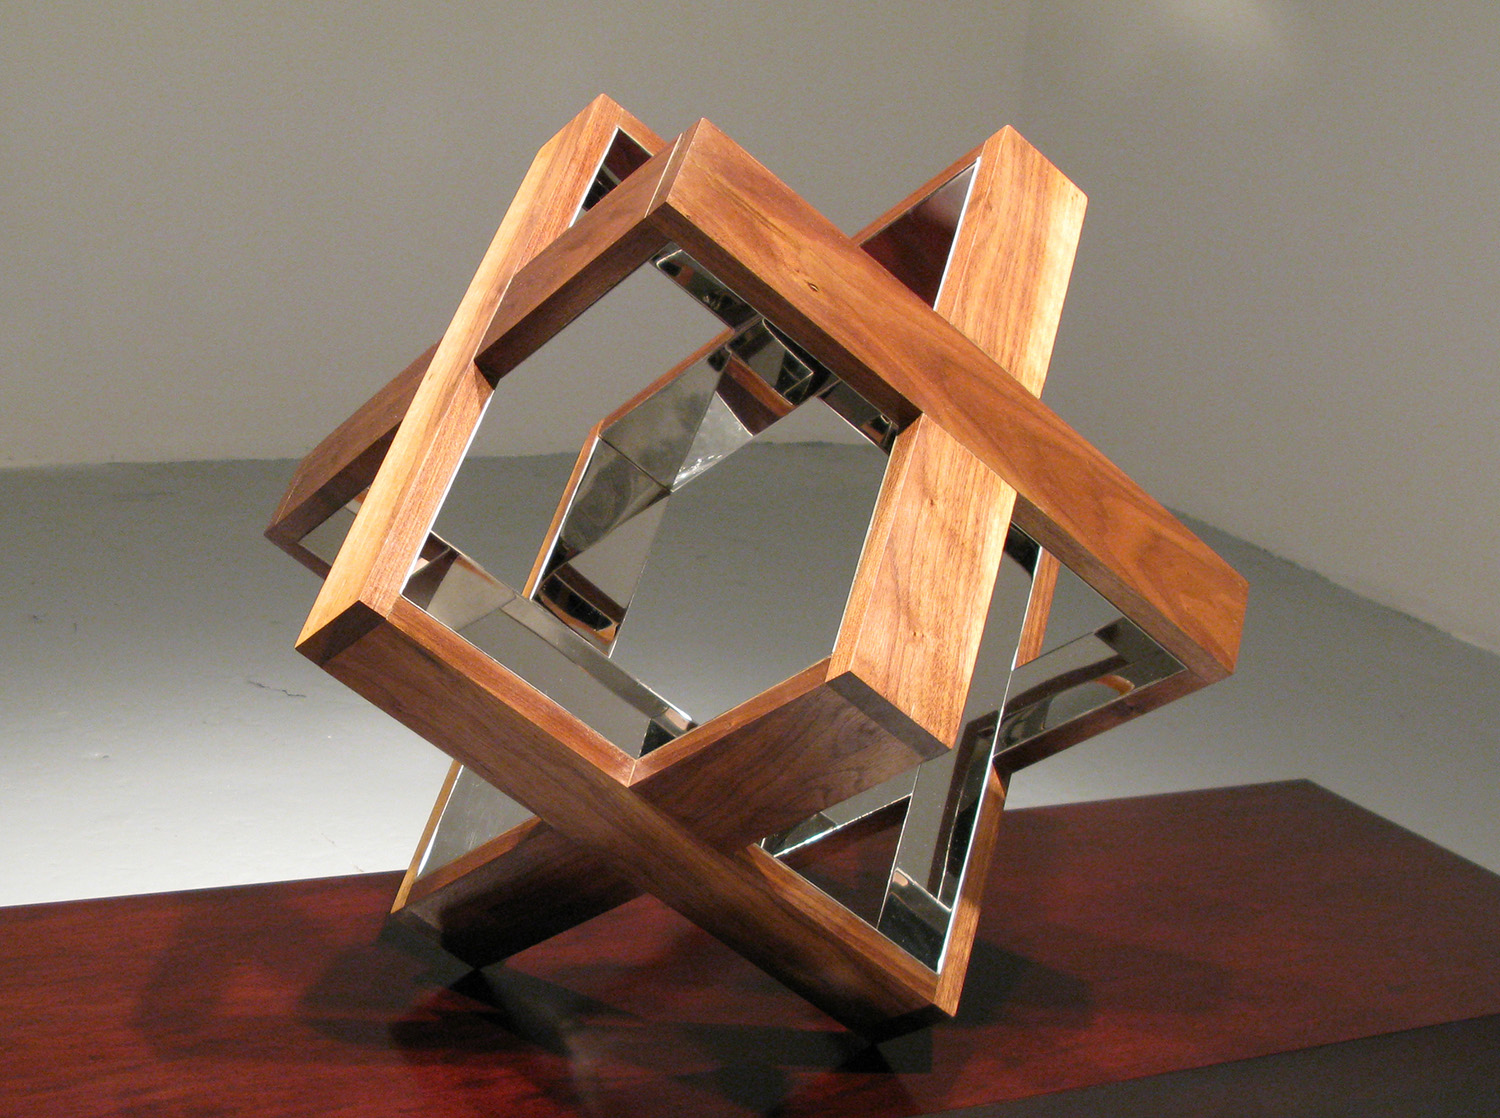 Strip Cube (Walnut), 2009, walnut, mirrored stainless steel, 18 x 18 x 18 inches